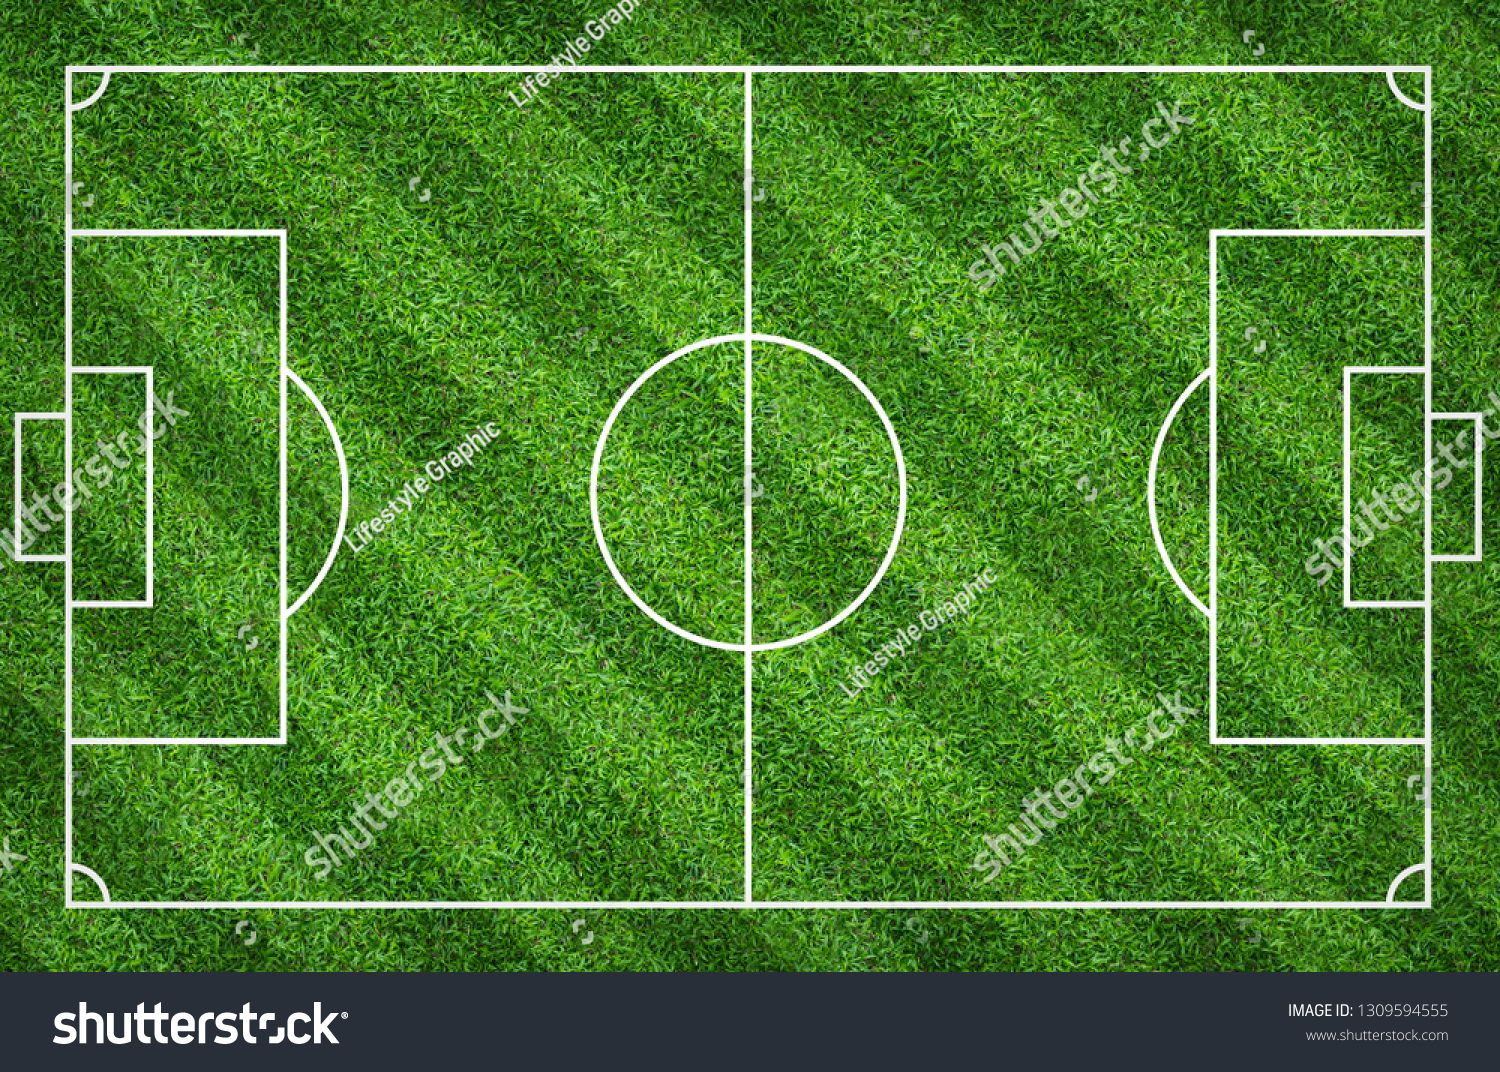 Football Field Or Soccer Field For Background Green Lawn Court For Create Sport Game Ad Ad Background Green Socc Soccer Field Football Field Green Lawn